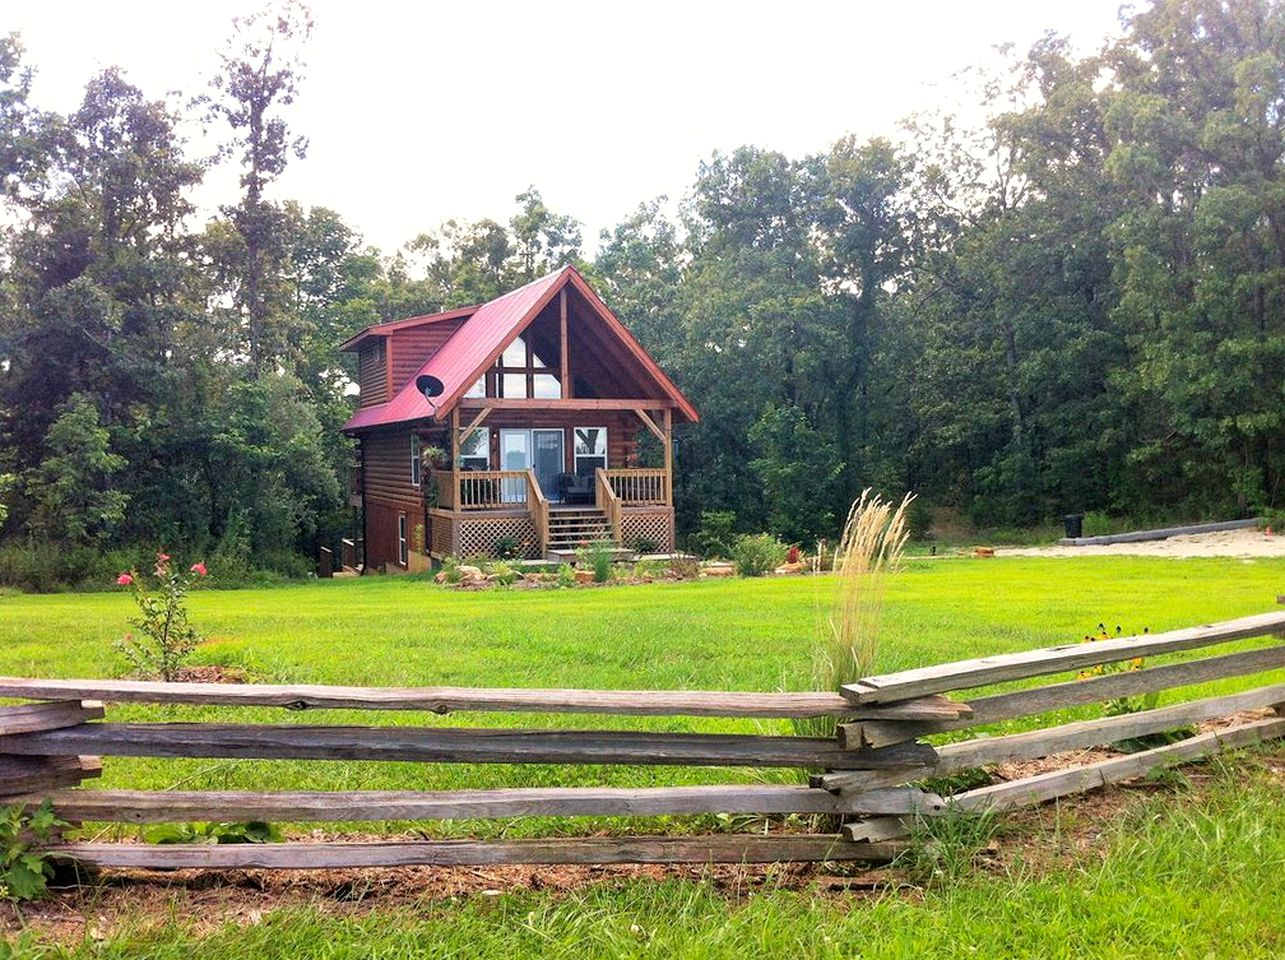 Meramec River cabin rental with hot tubs in Missouri.